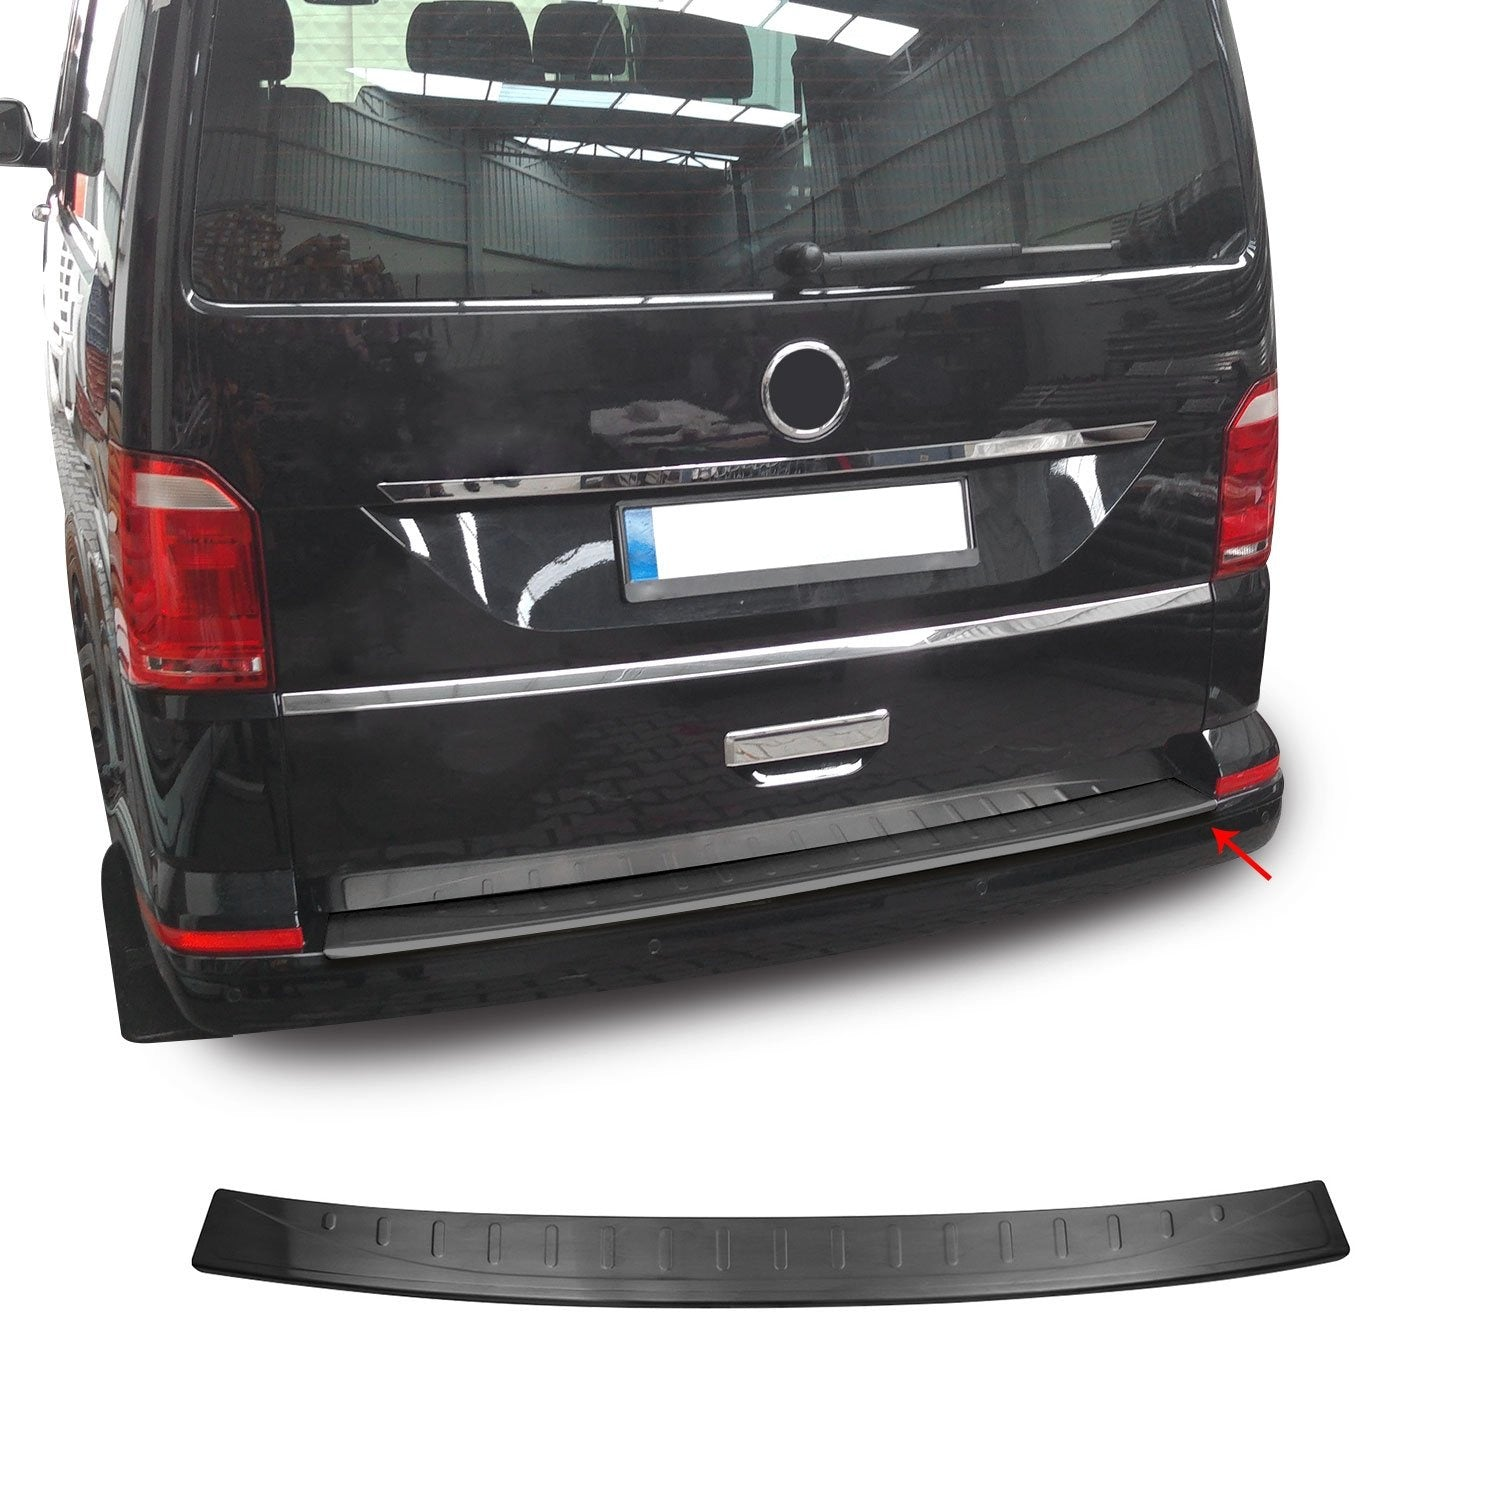 Dark Brushed Chrome Rear Bumper Trunk Sill Cover For VW T6 Transporter 2016-2021